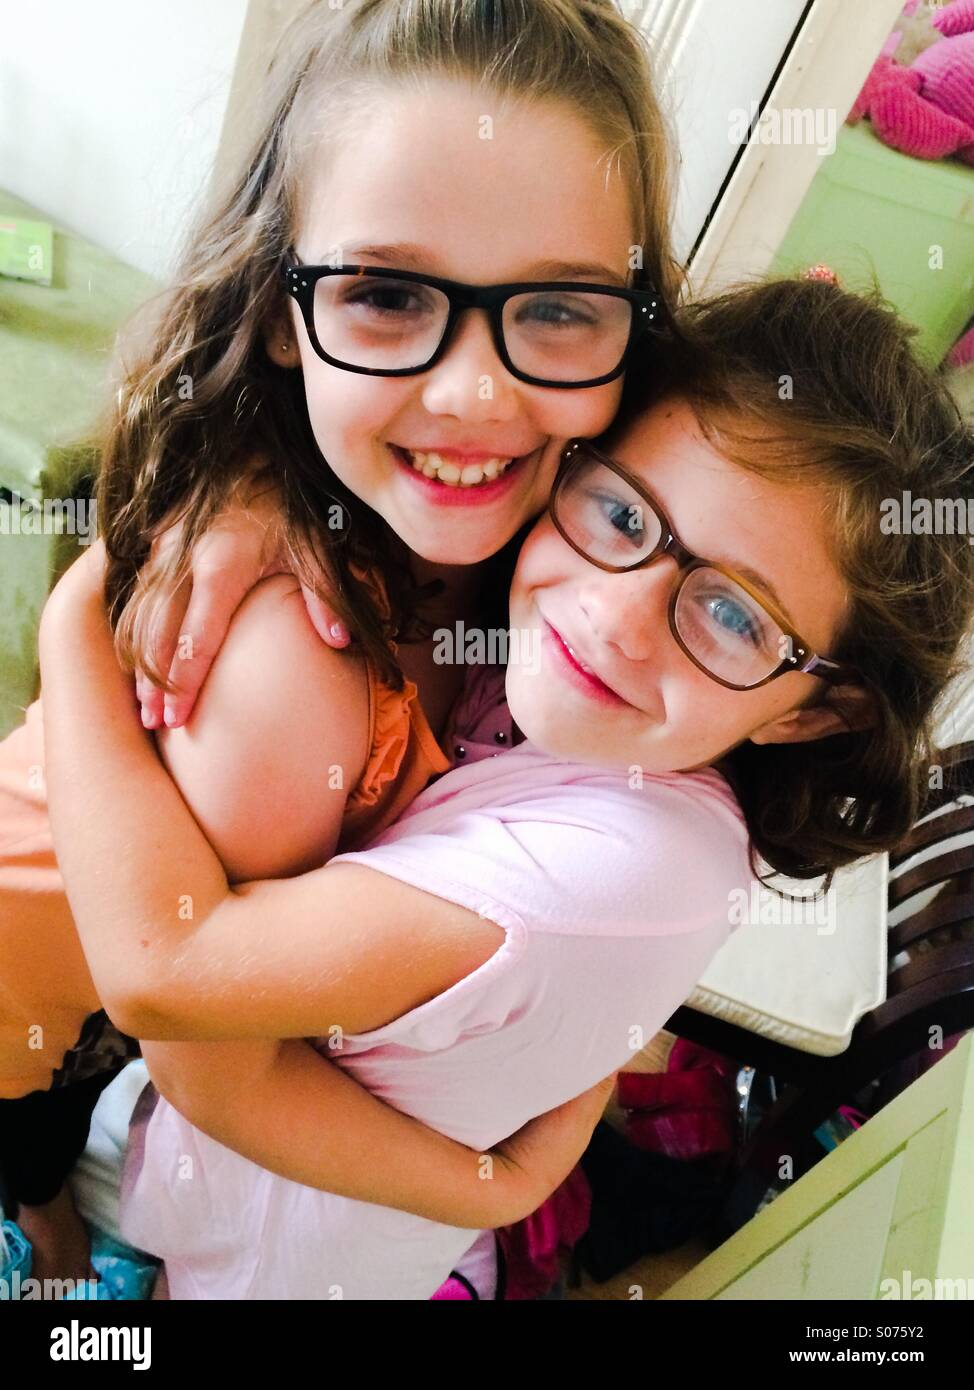 Two 6 year old girls wearing glasses - Stock Image